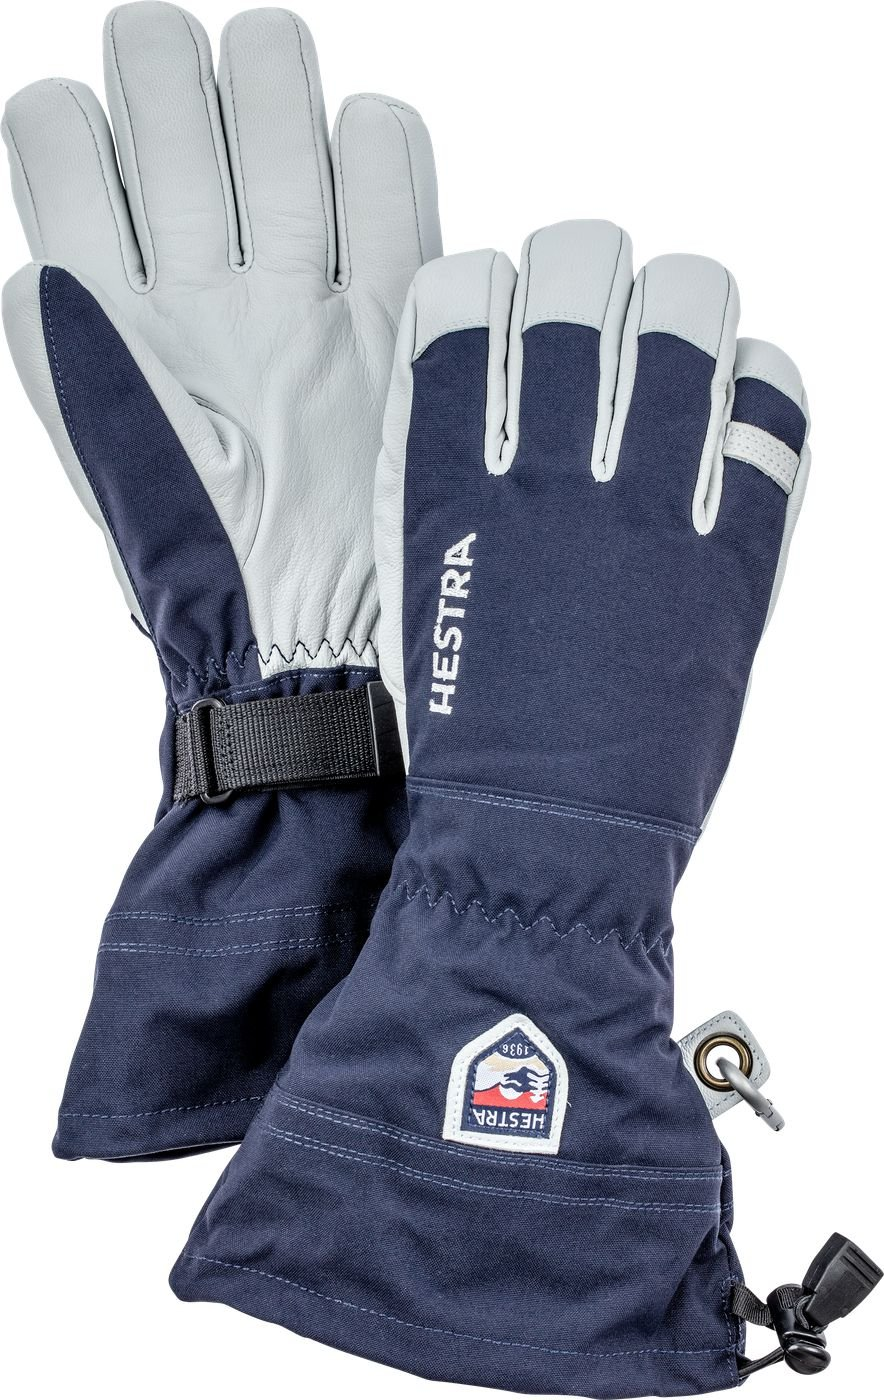 NAVY BLANC  Hestra Gants Heli Ski and Ride avec gantelet